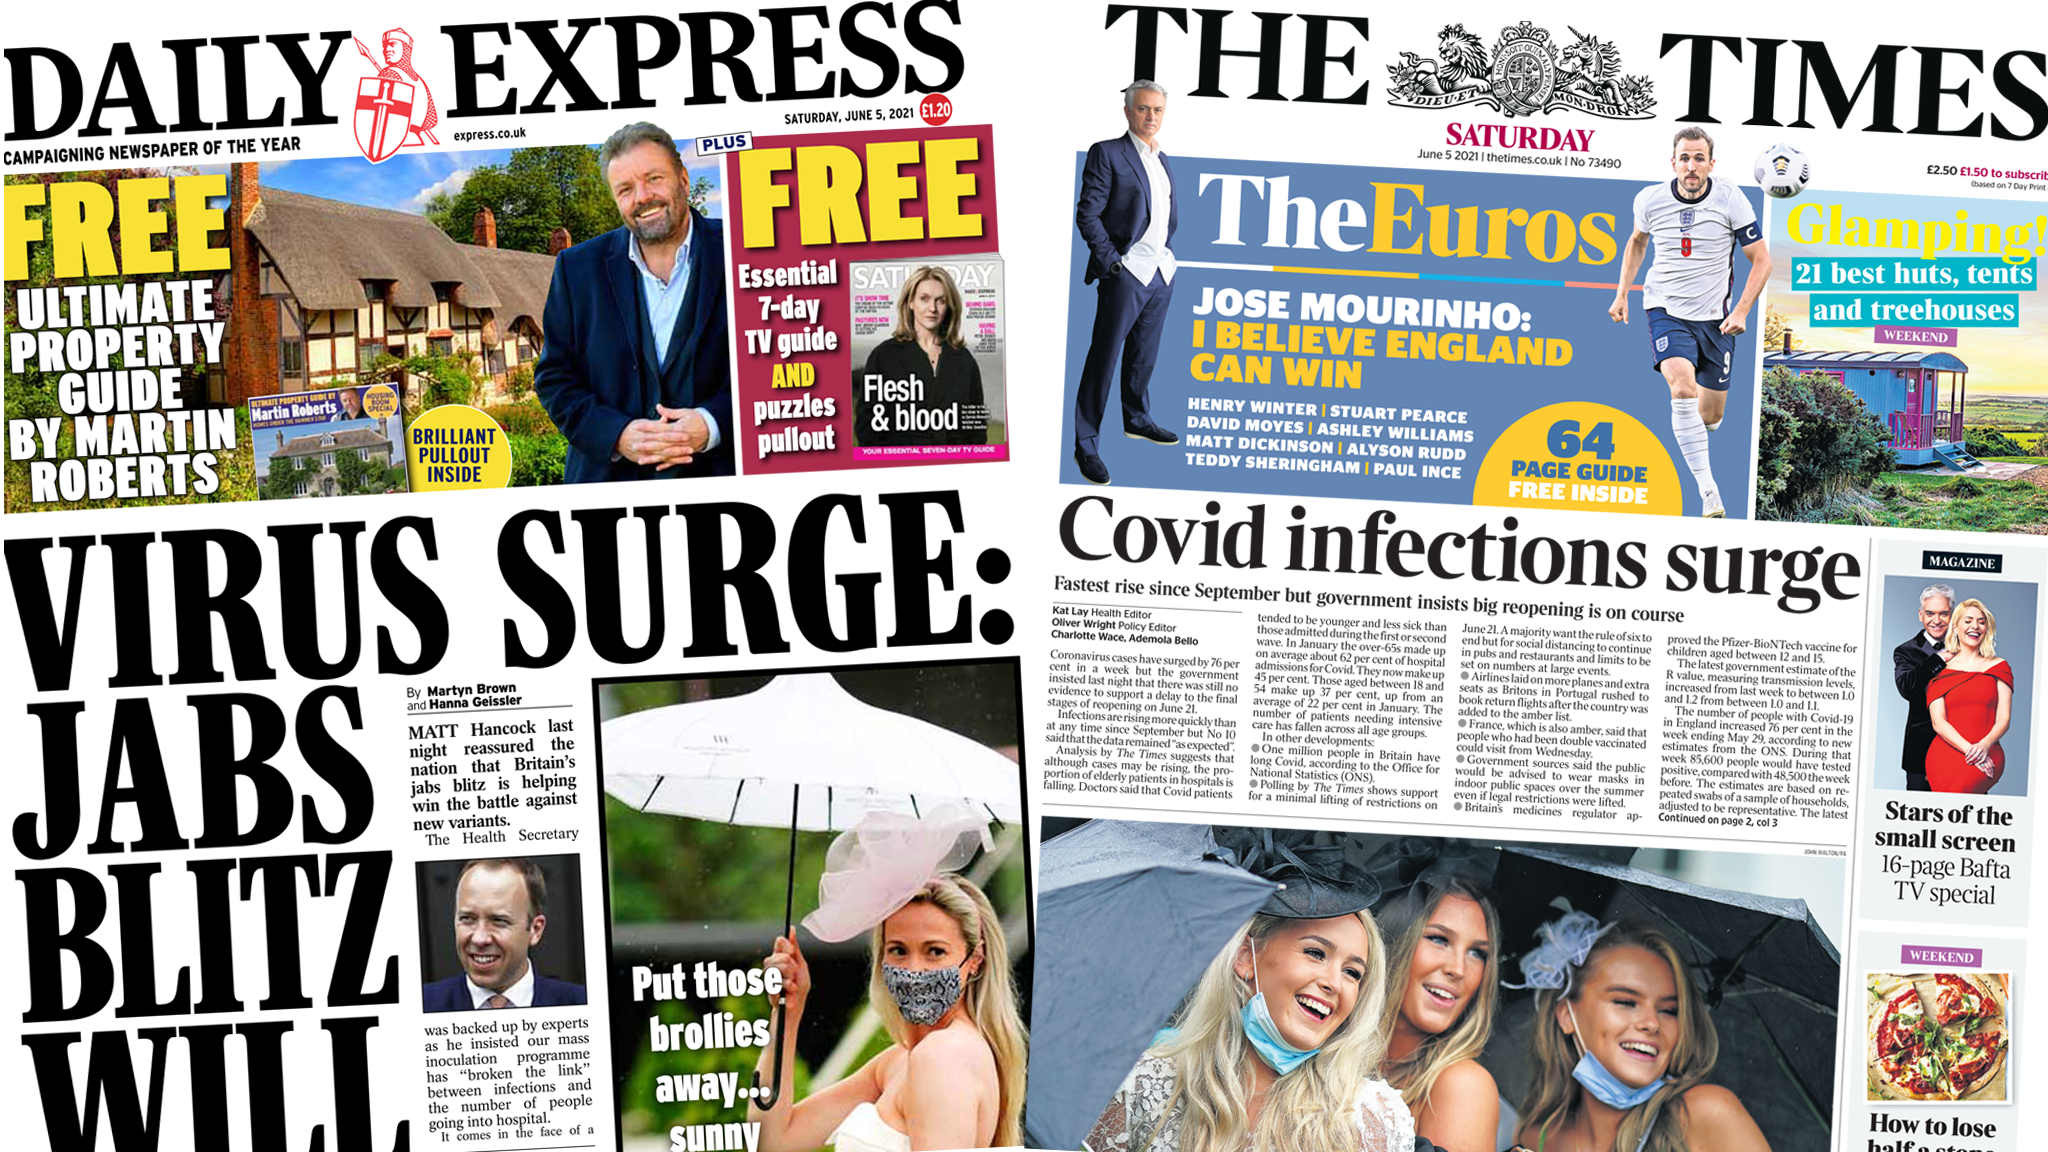 Express and Times